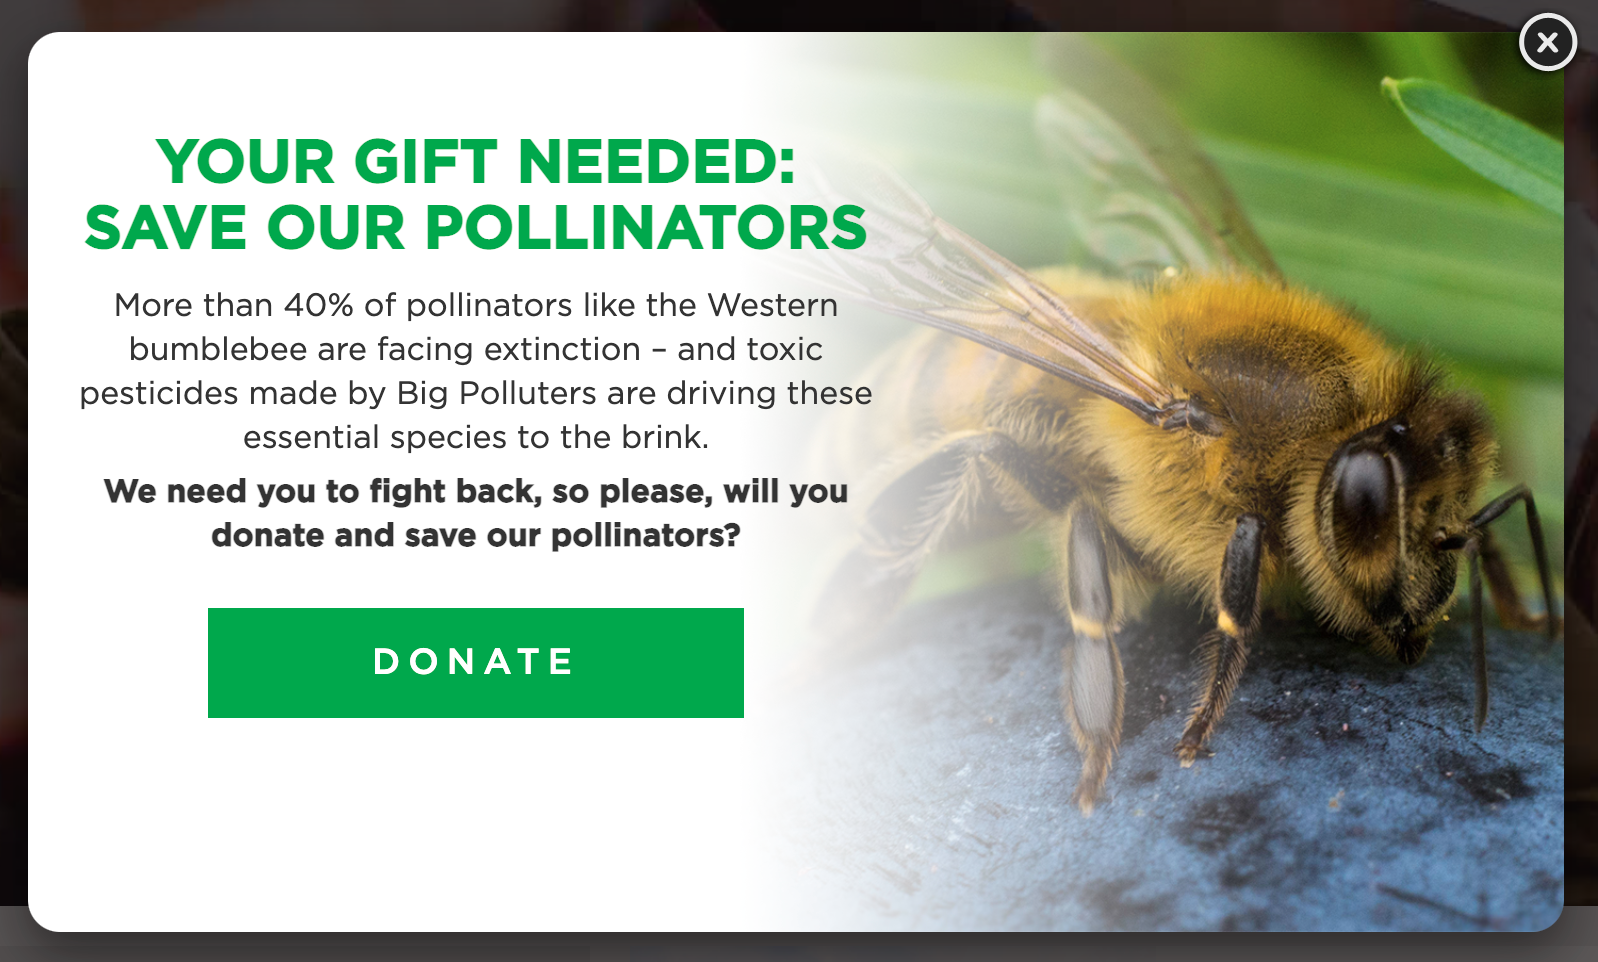 Friends of the Earth pop-up with Donate button